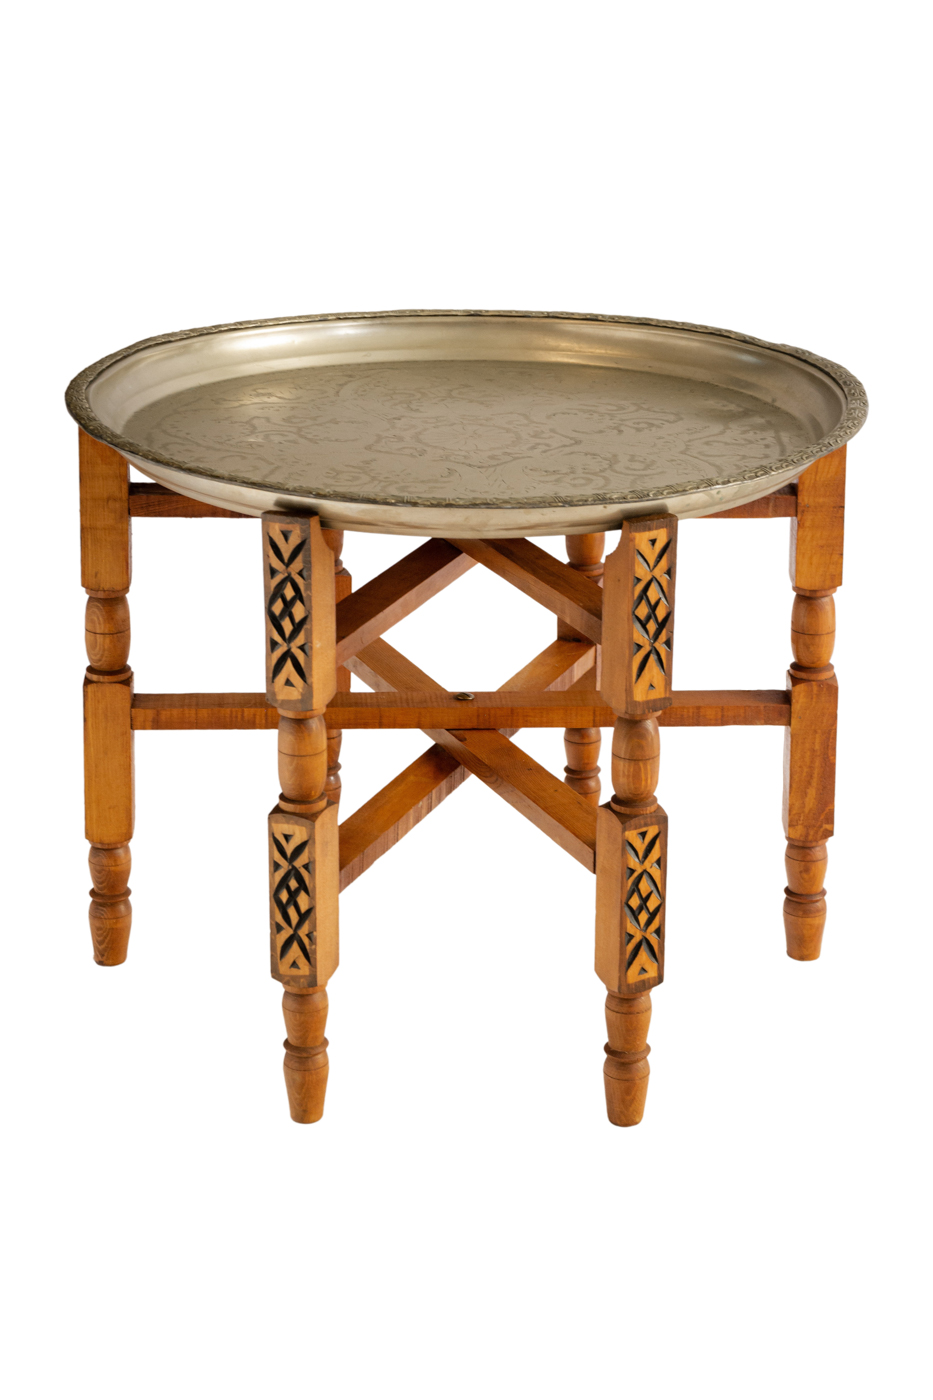 Foldable side table with metal tray carved with flower motifs